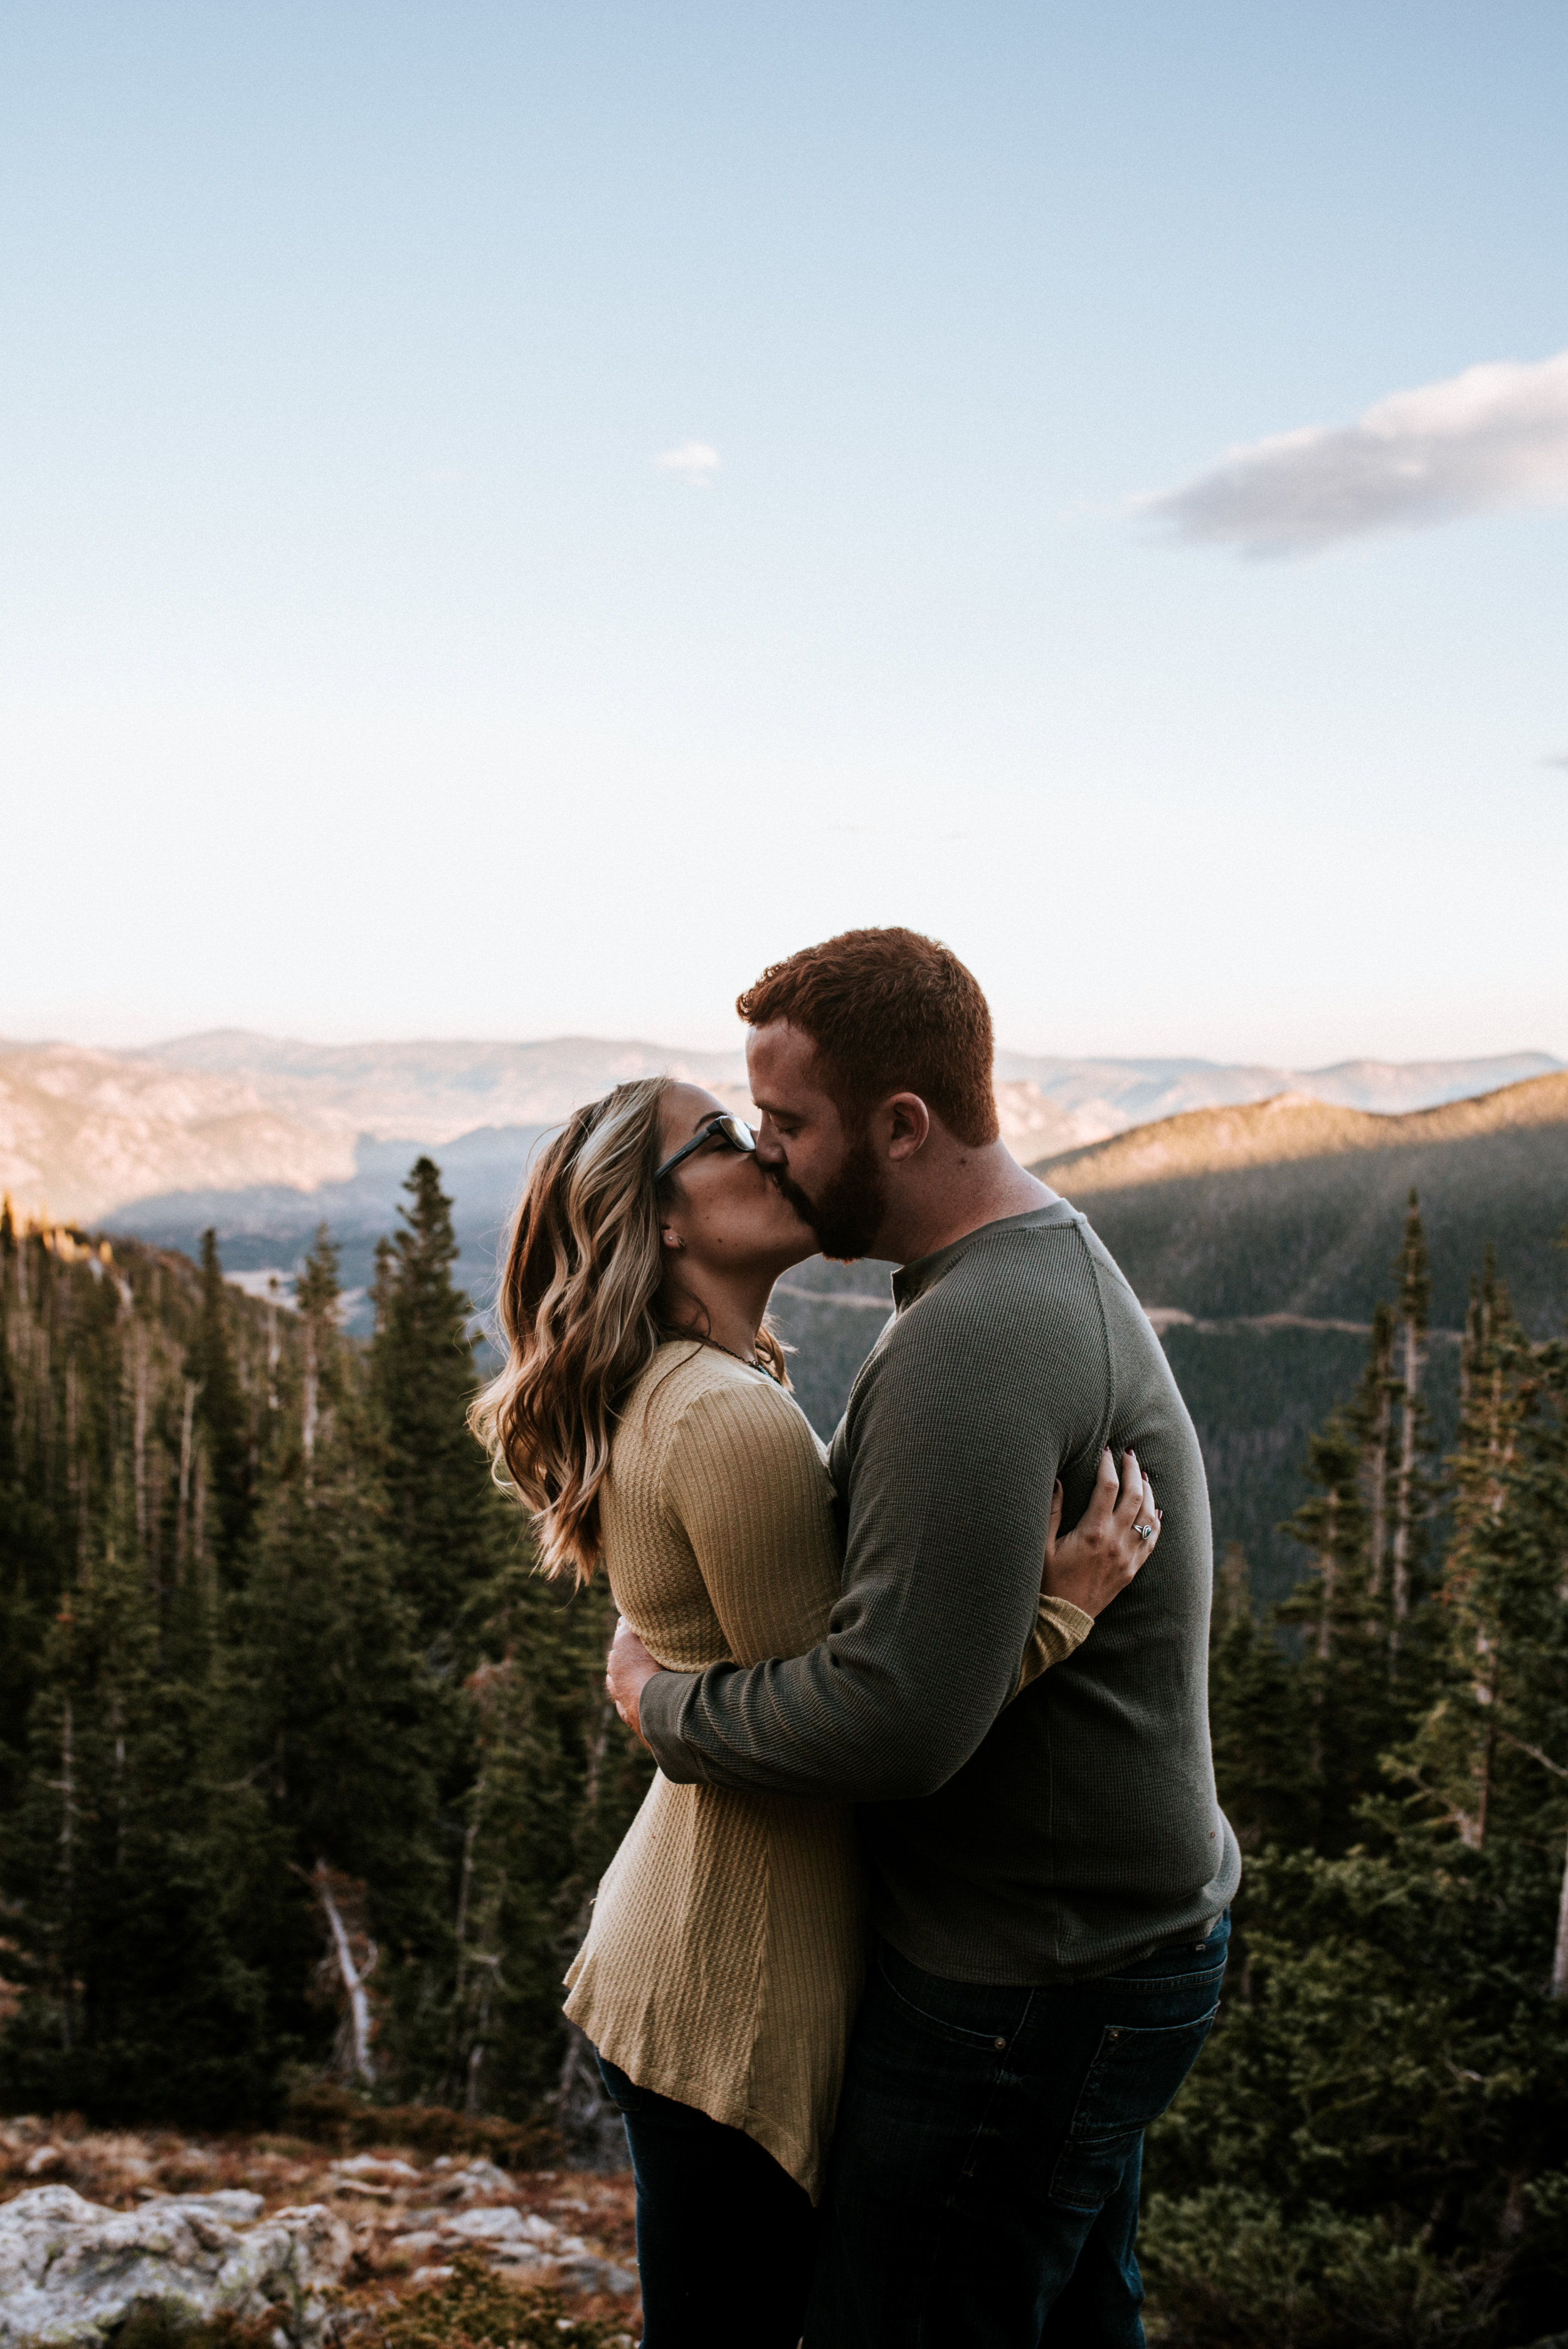 Romantic Windy Rocky Mountain National Park Engagement Photographer.jpg